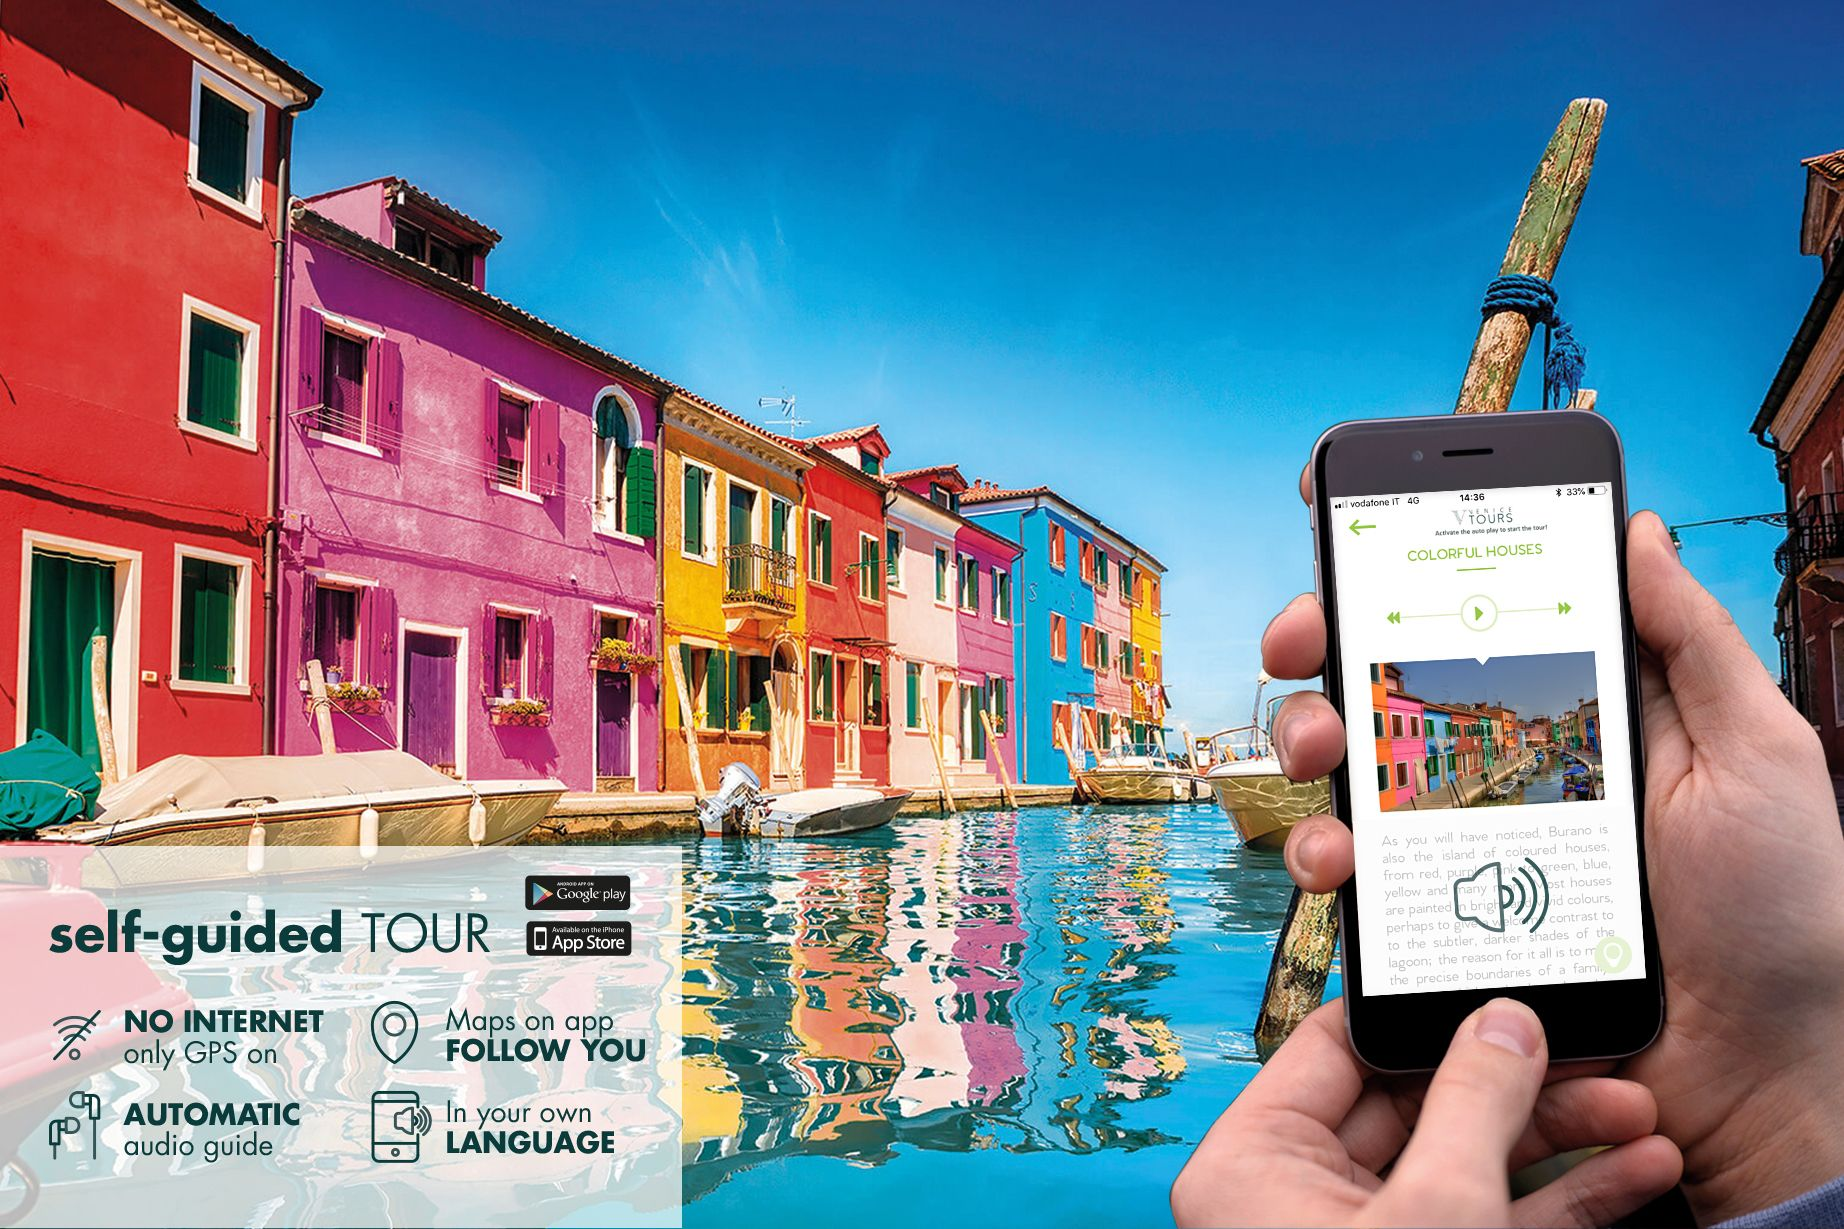 Self-guided islands tour & boat daily pass